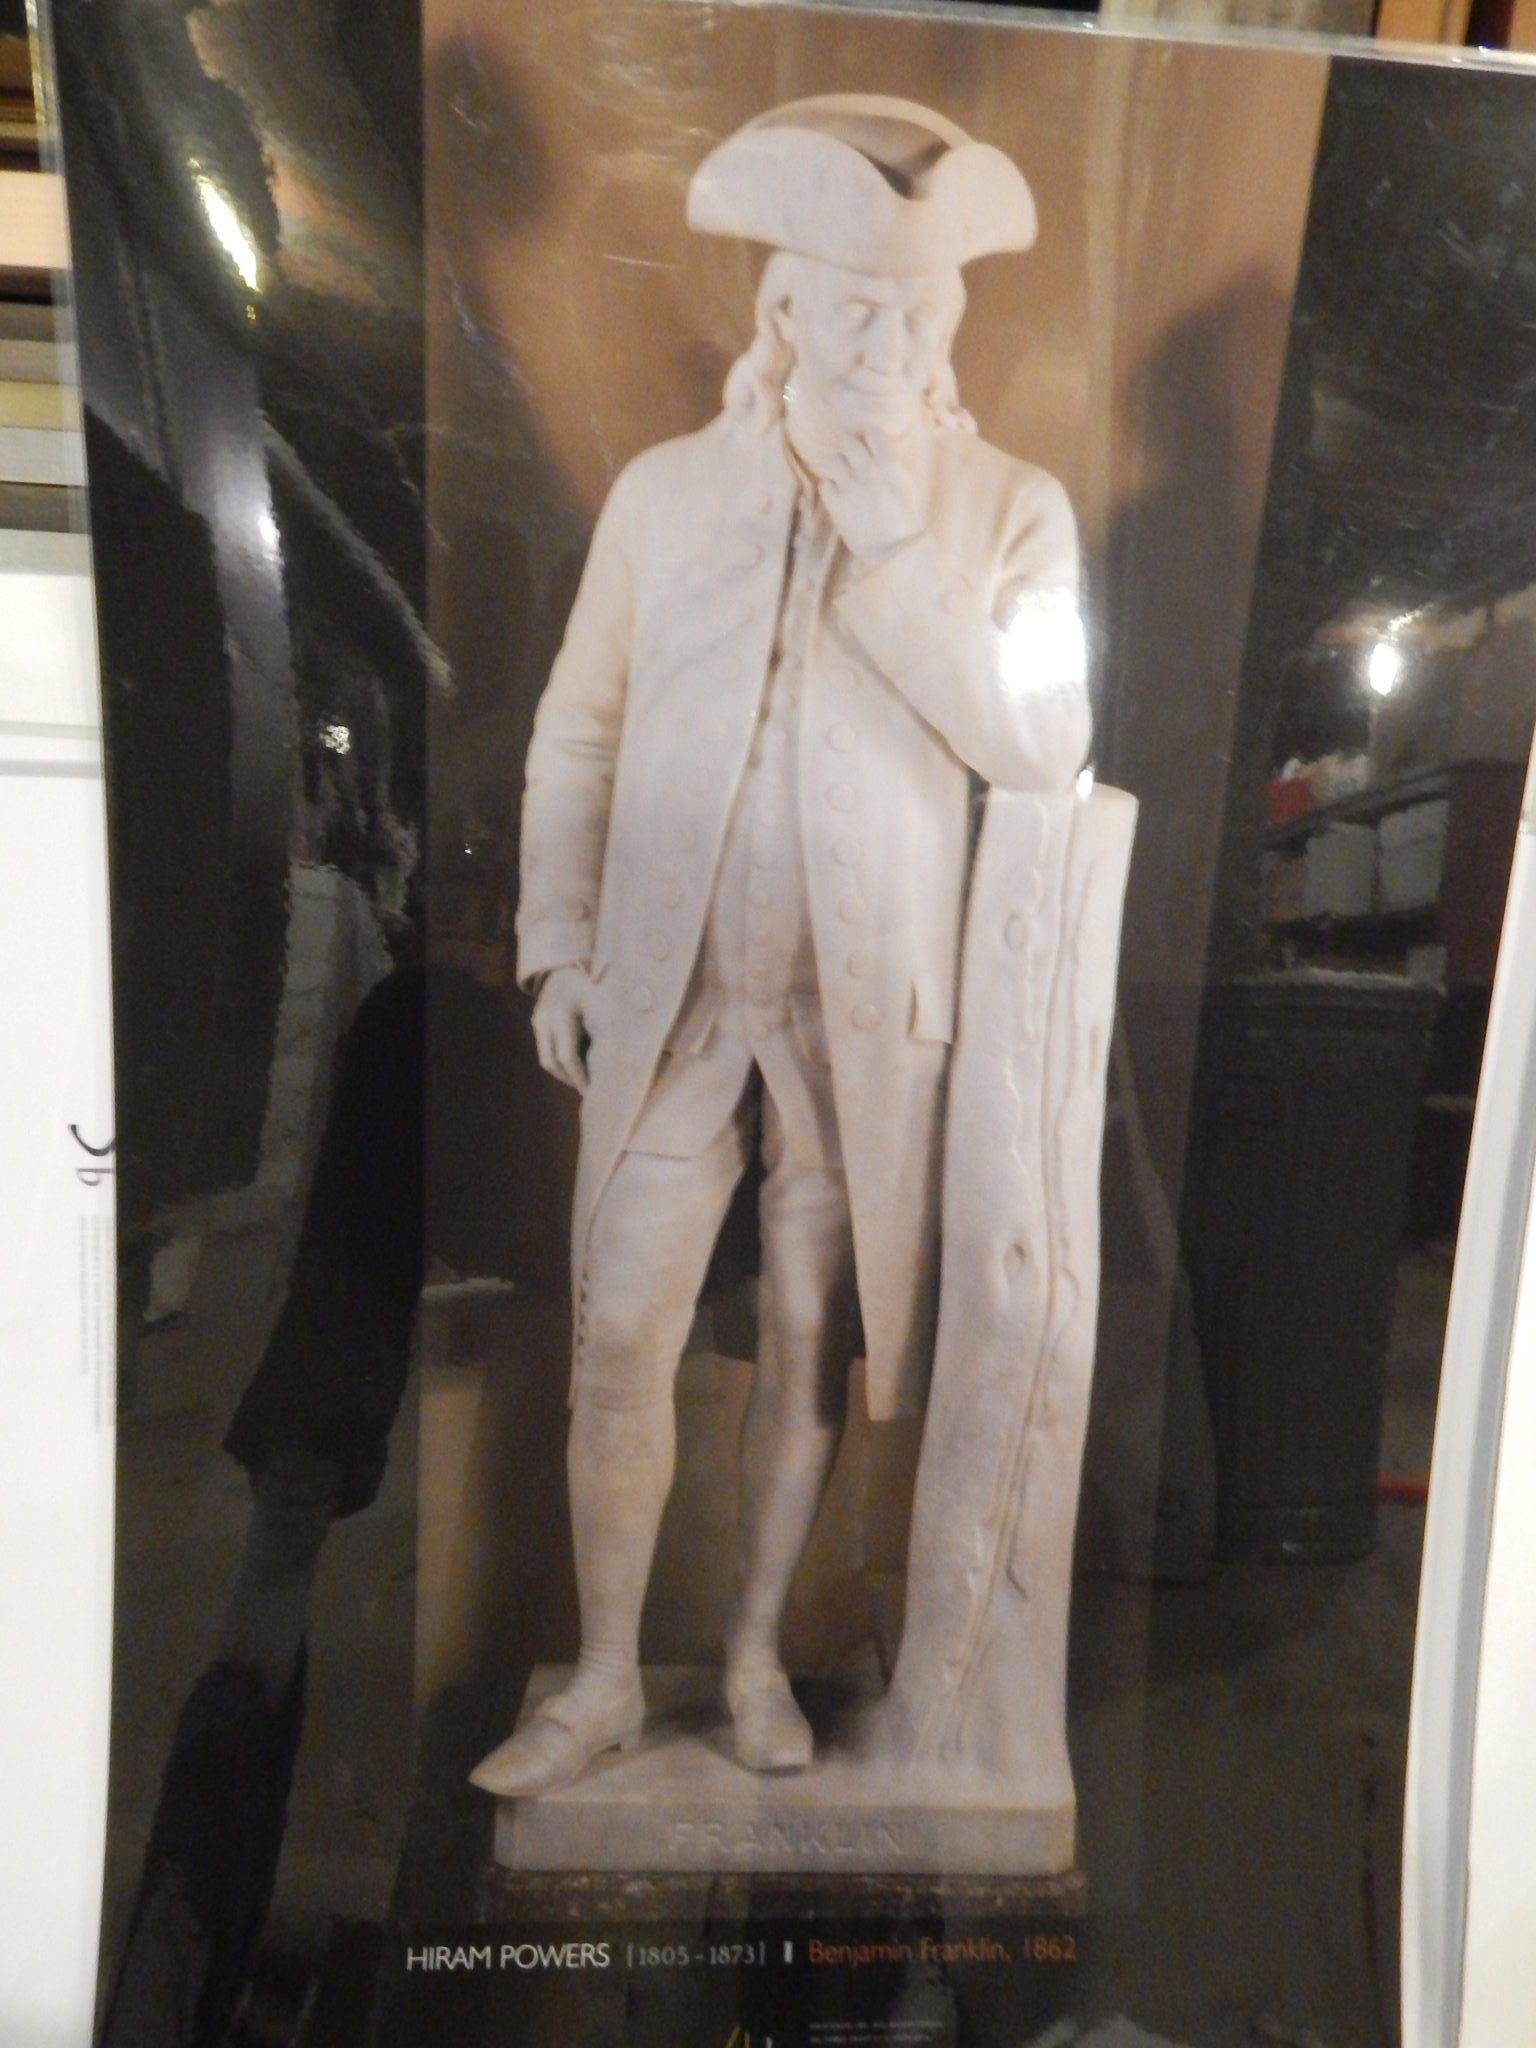 Photo of Hiram Powers' sculpture of Benjamin Franklin